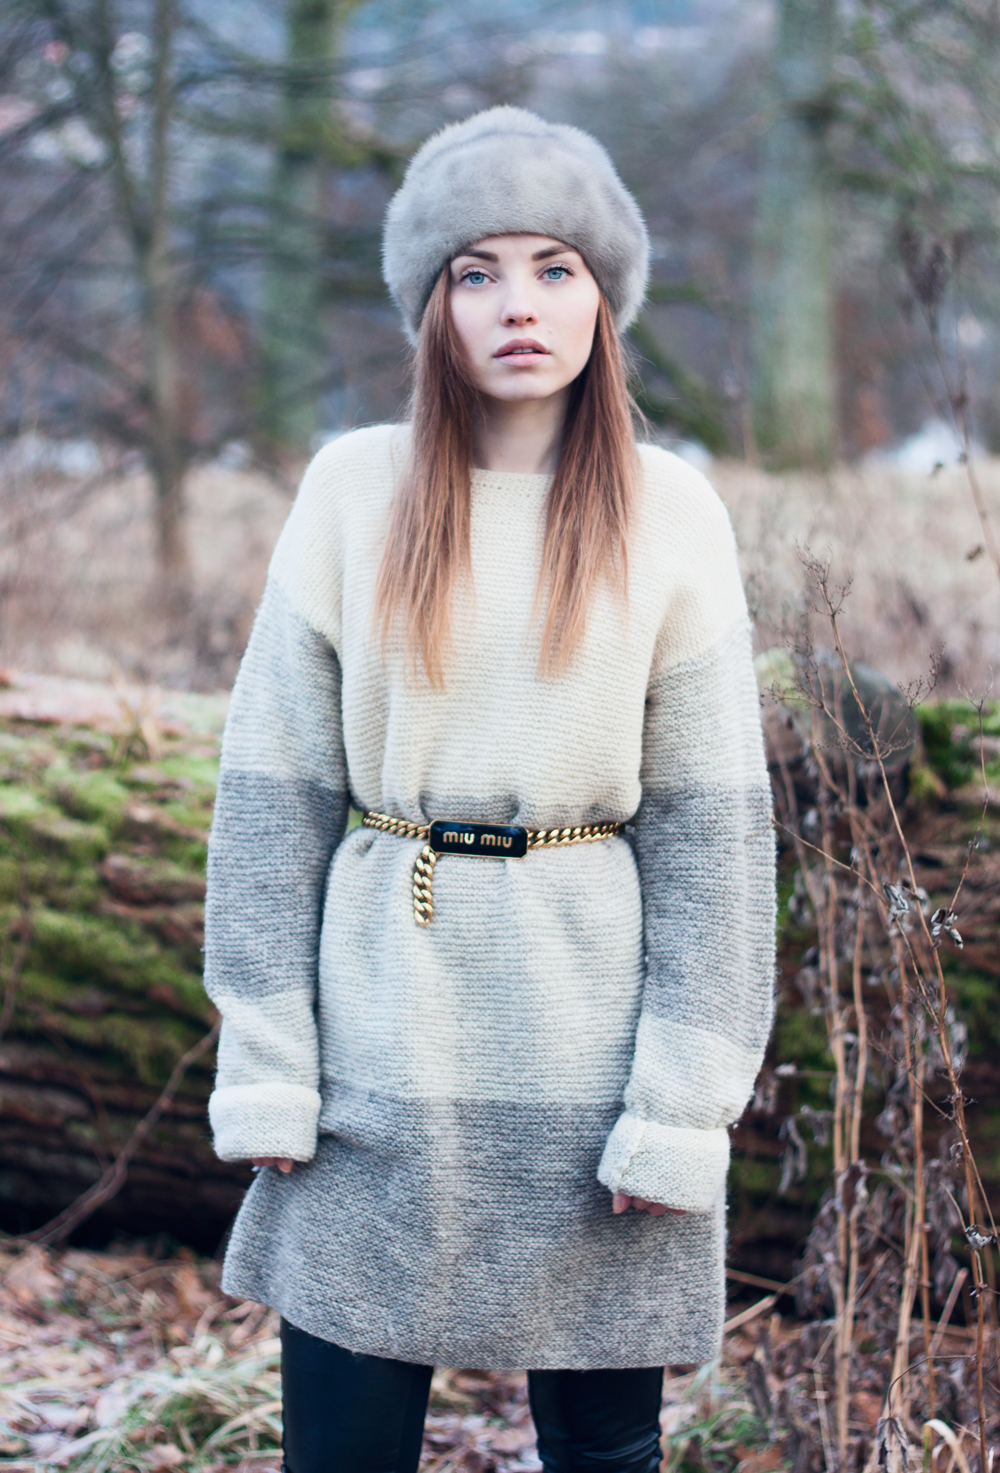 Knits, Nääs Castle, Nääs Slott, Fur, Miu Mu Belt, Sweden, Gothenburg Nature